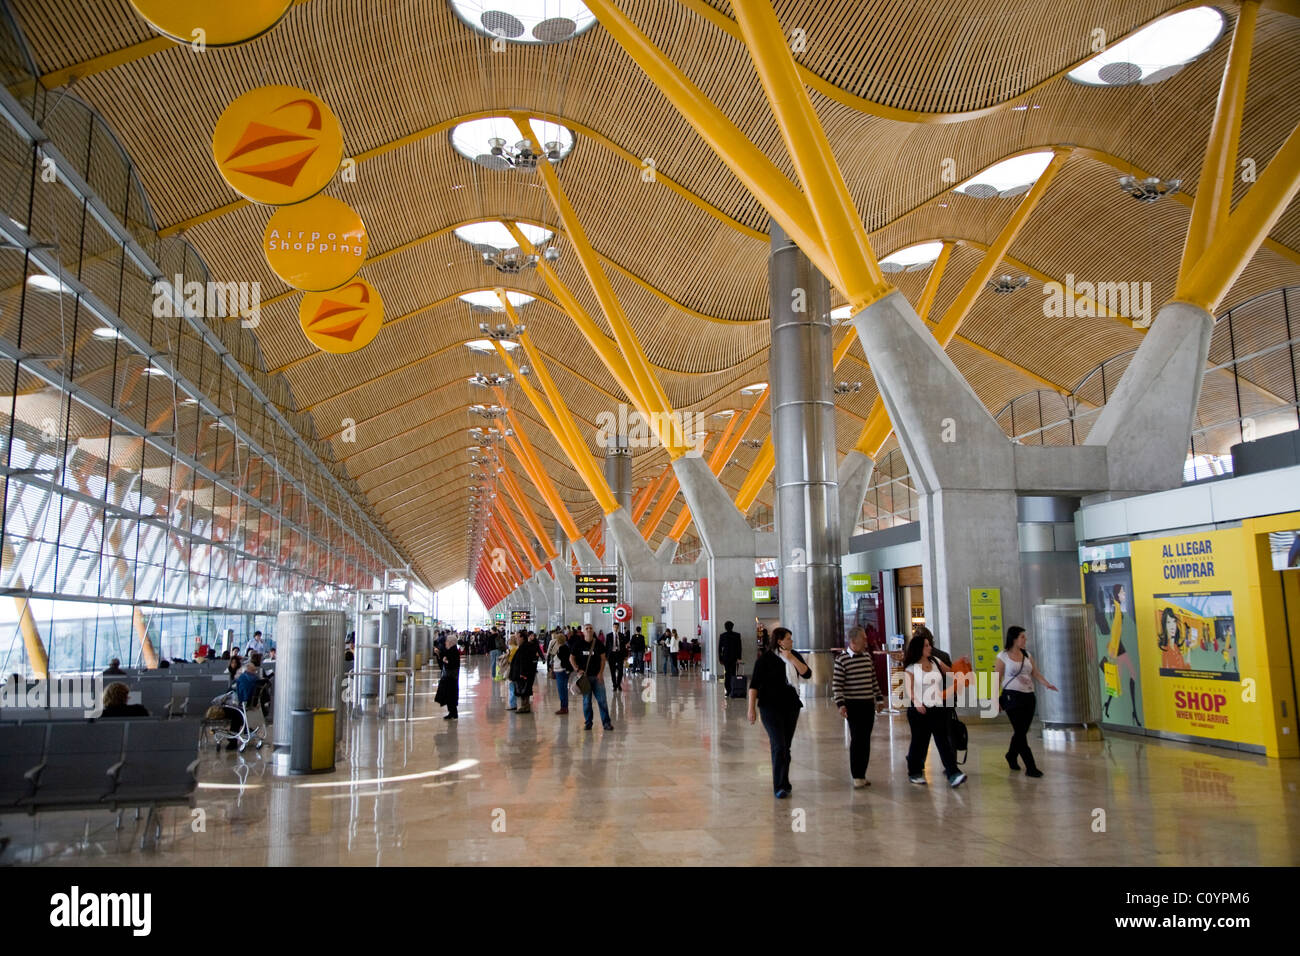 Airport Departure Departures Lounge And Modern Roof At